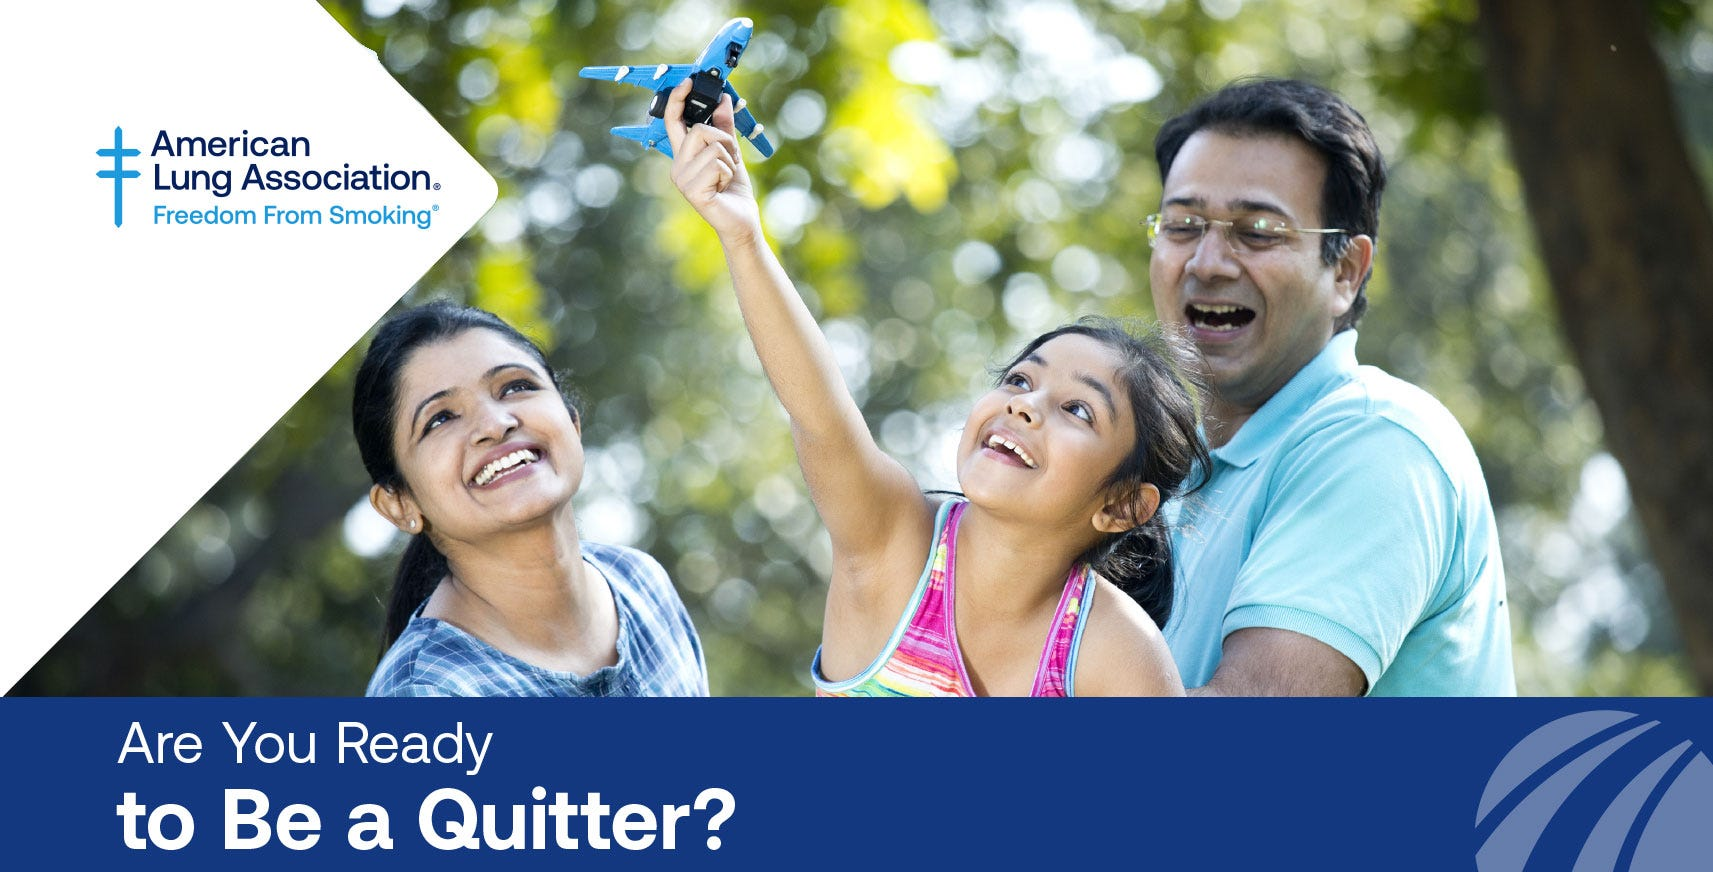 Are You Ready to be a Quitter?